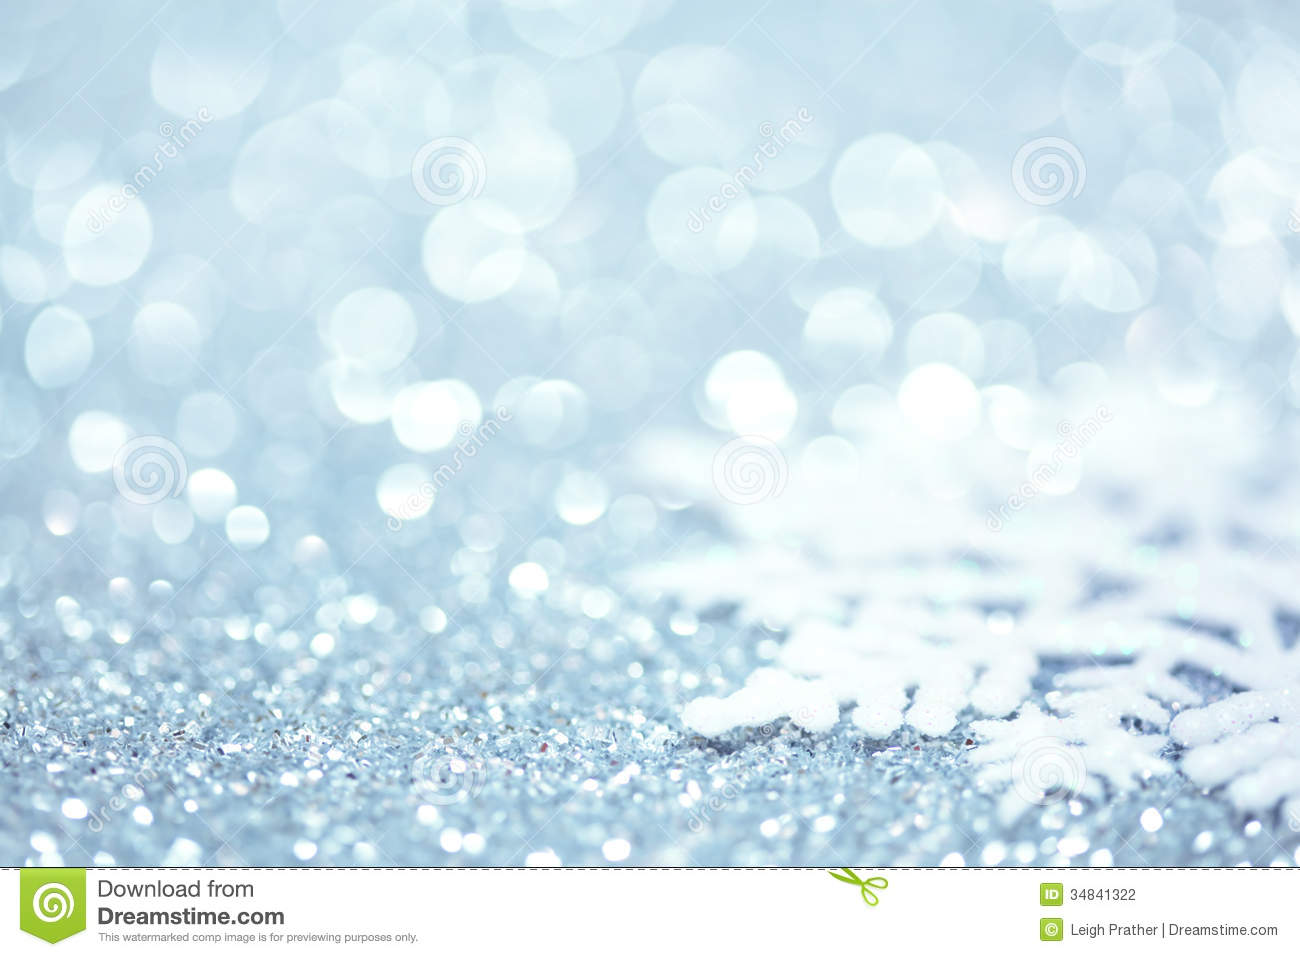 Cute Styles Girl Wallpaper Snowflake On Glitter Stock Photography Image 34841322